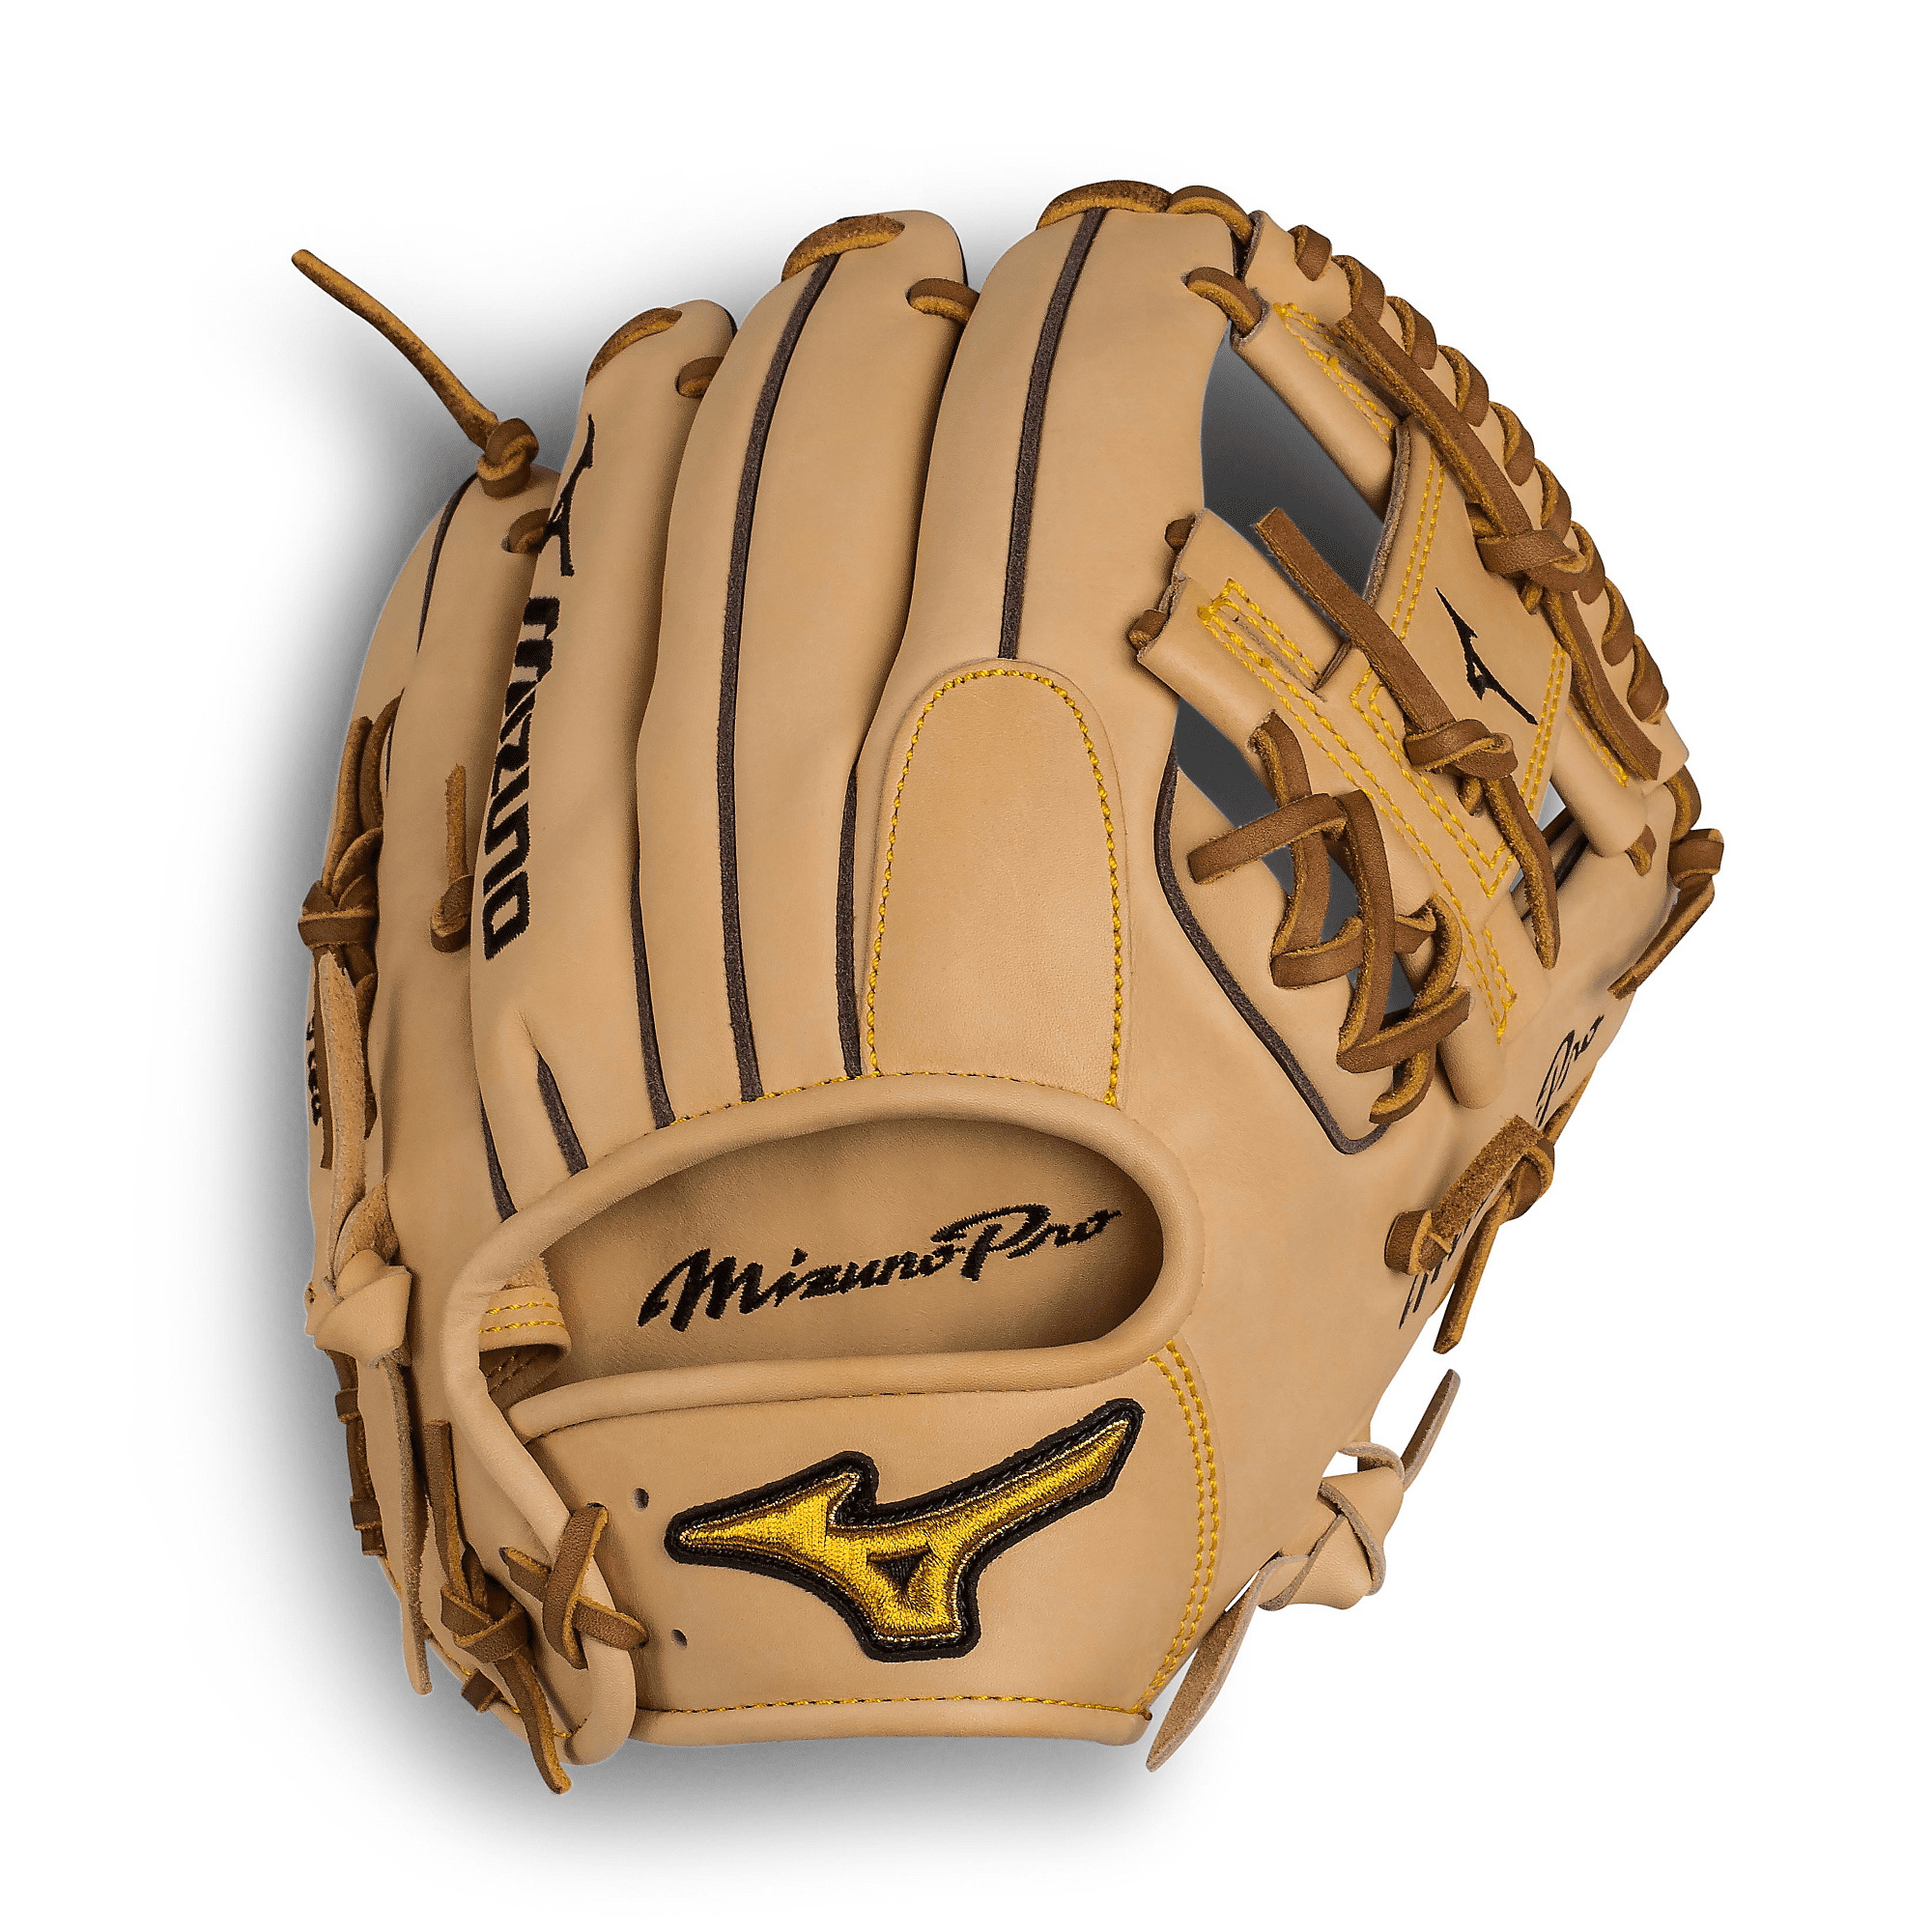 "Mizuno Pro Infield Baseball Glove 11.75"" Shallow Pocket by Mizuno"